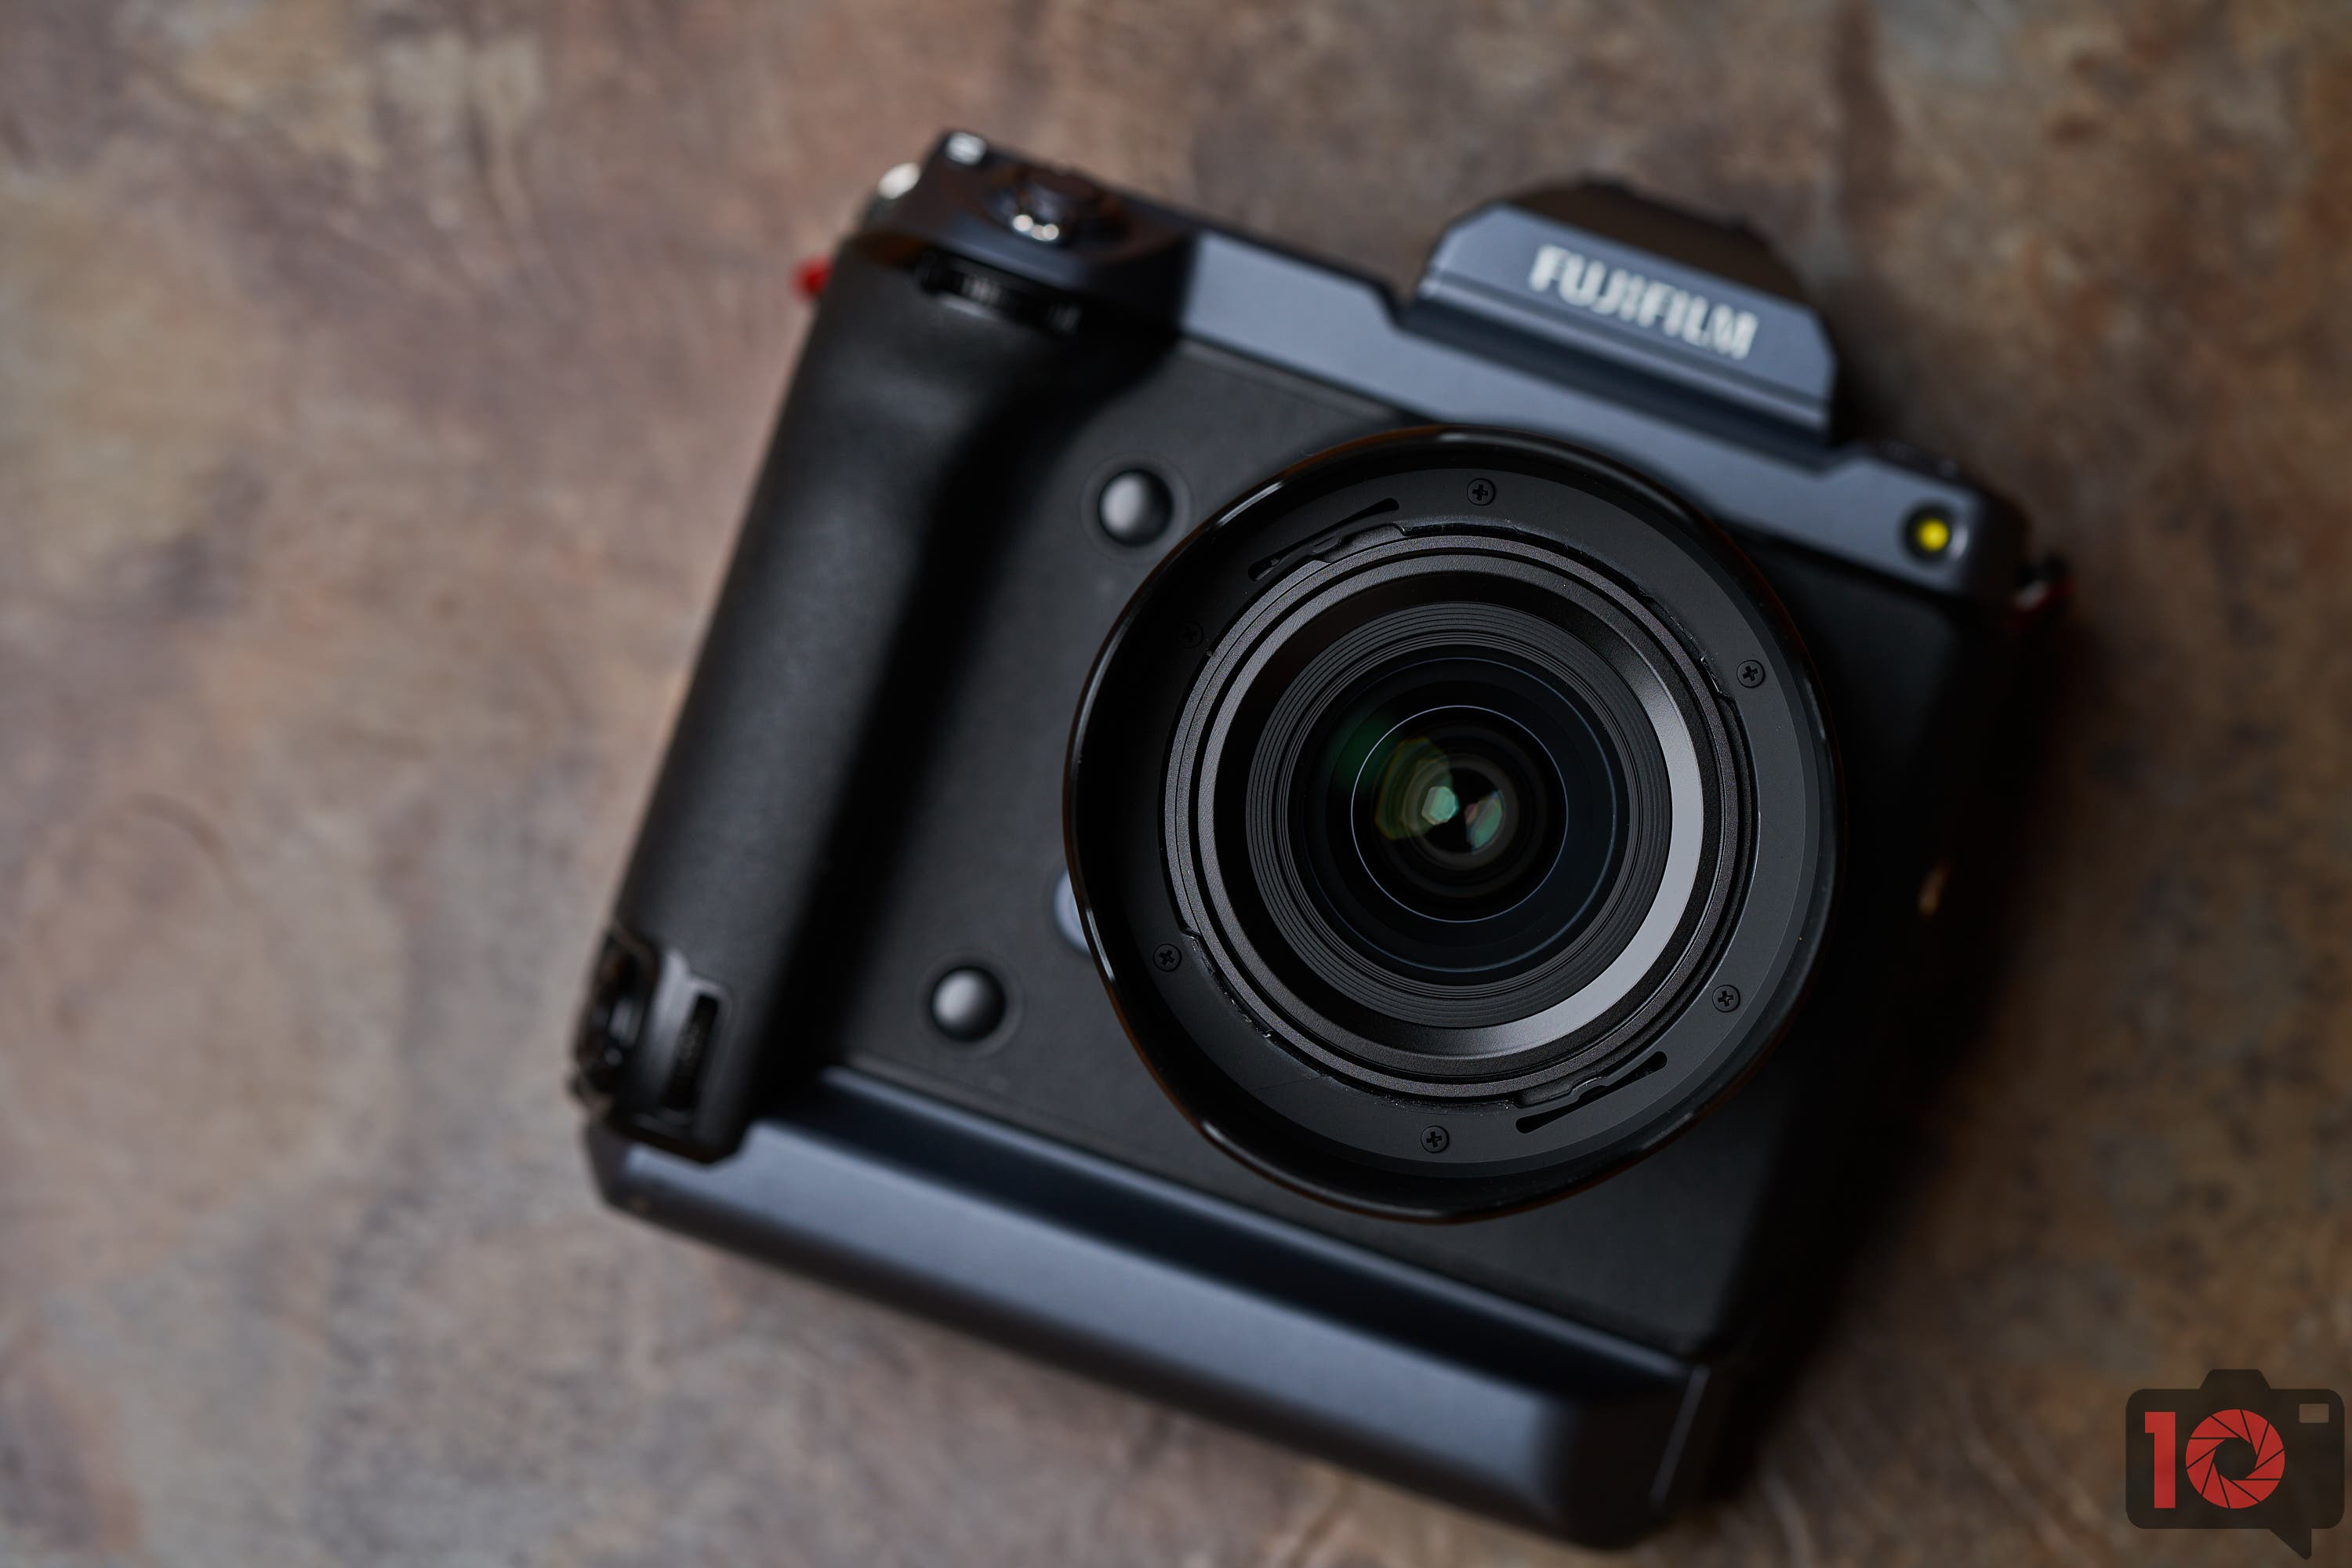 The Best Fujifilm Cameras and Lenses of the Past Decade